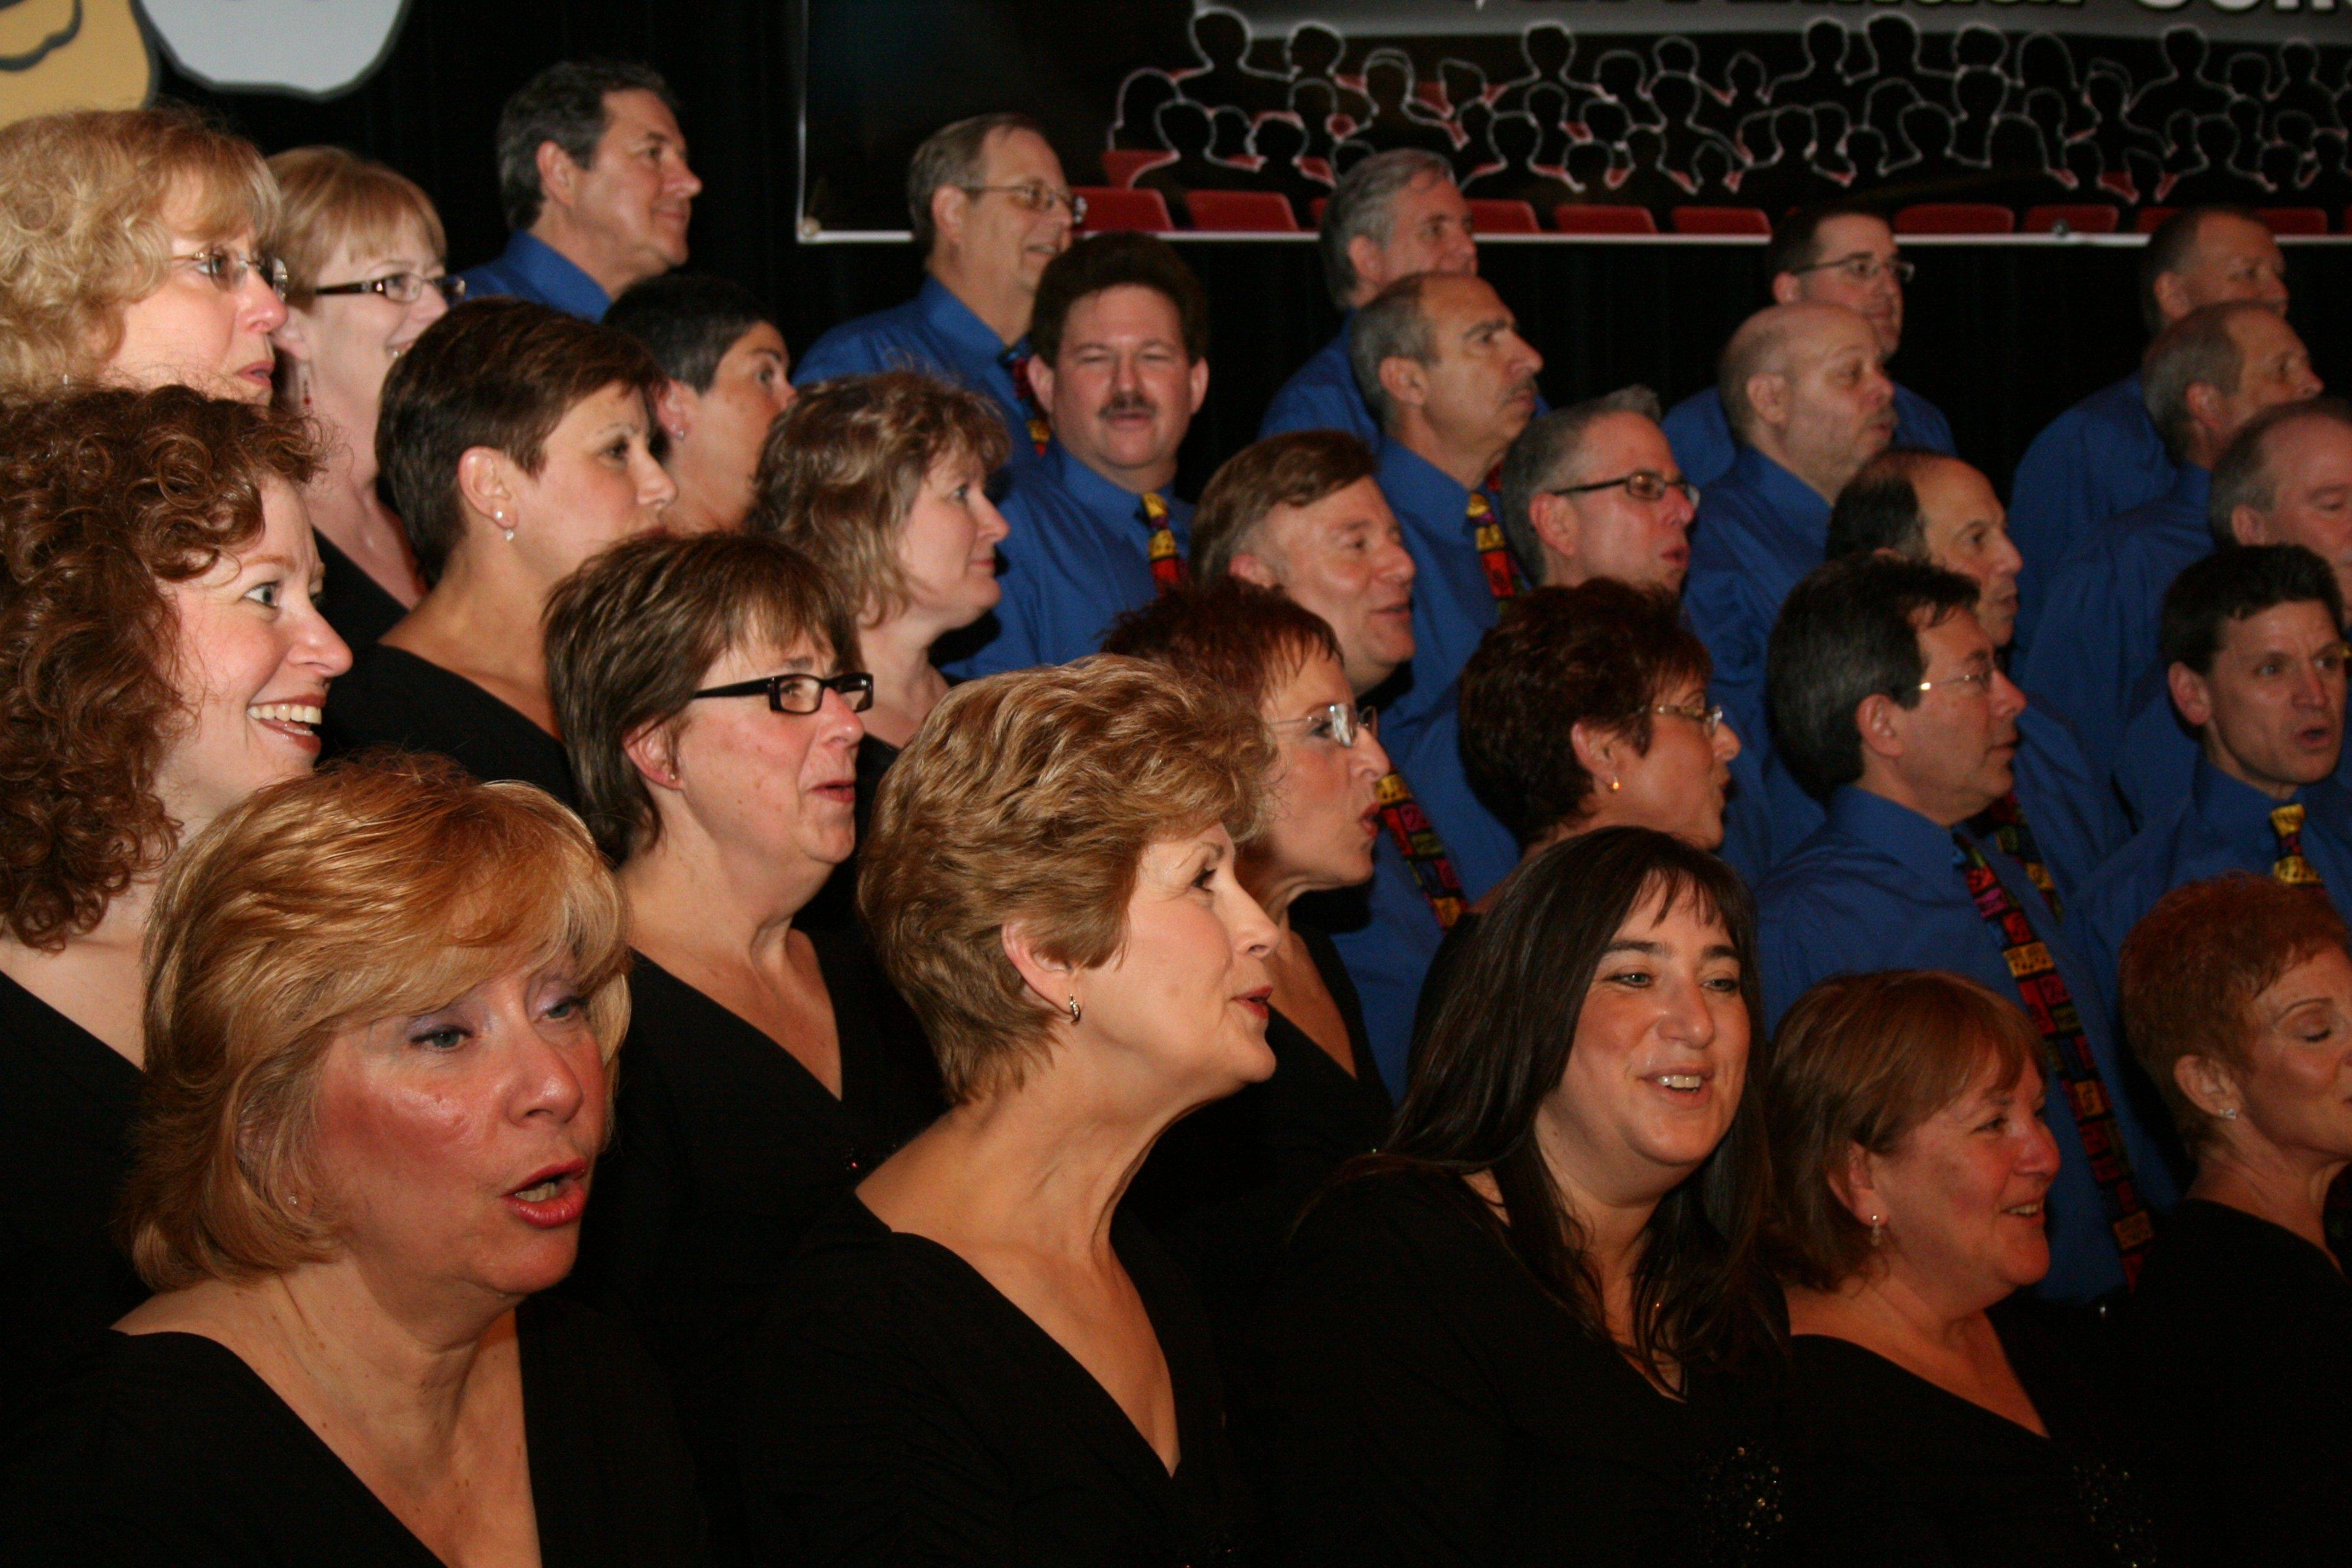 The BG Singers will perform in concert Friday and Saturday.